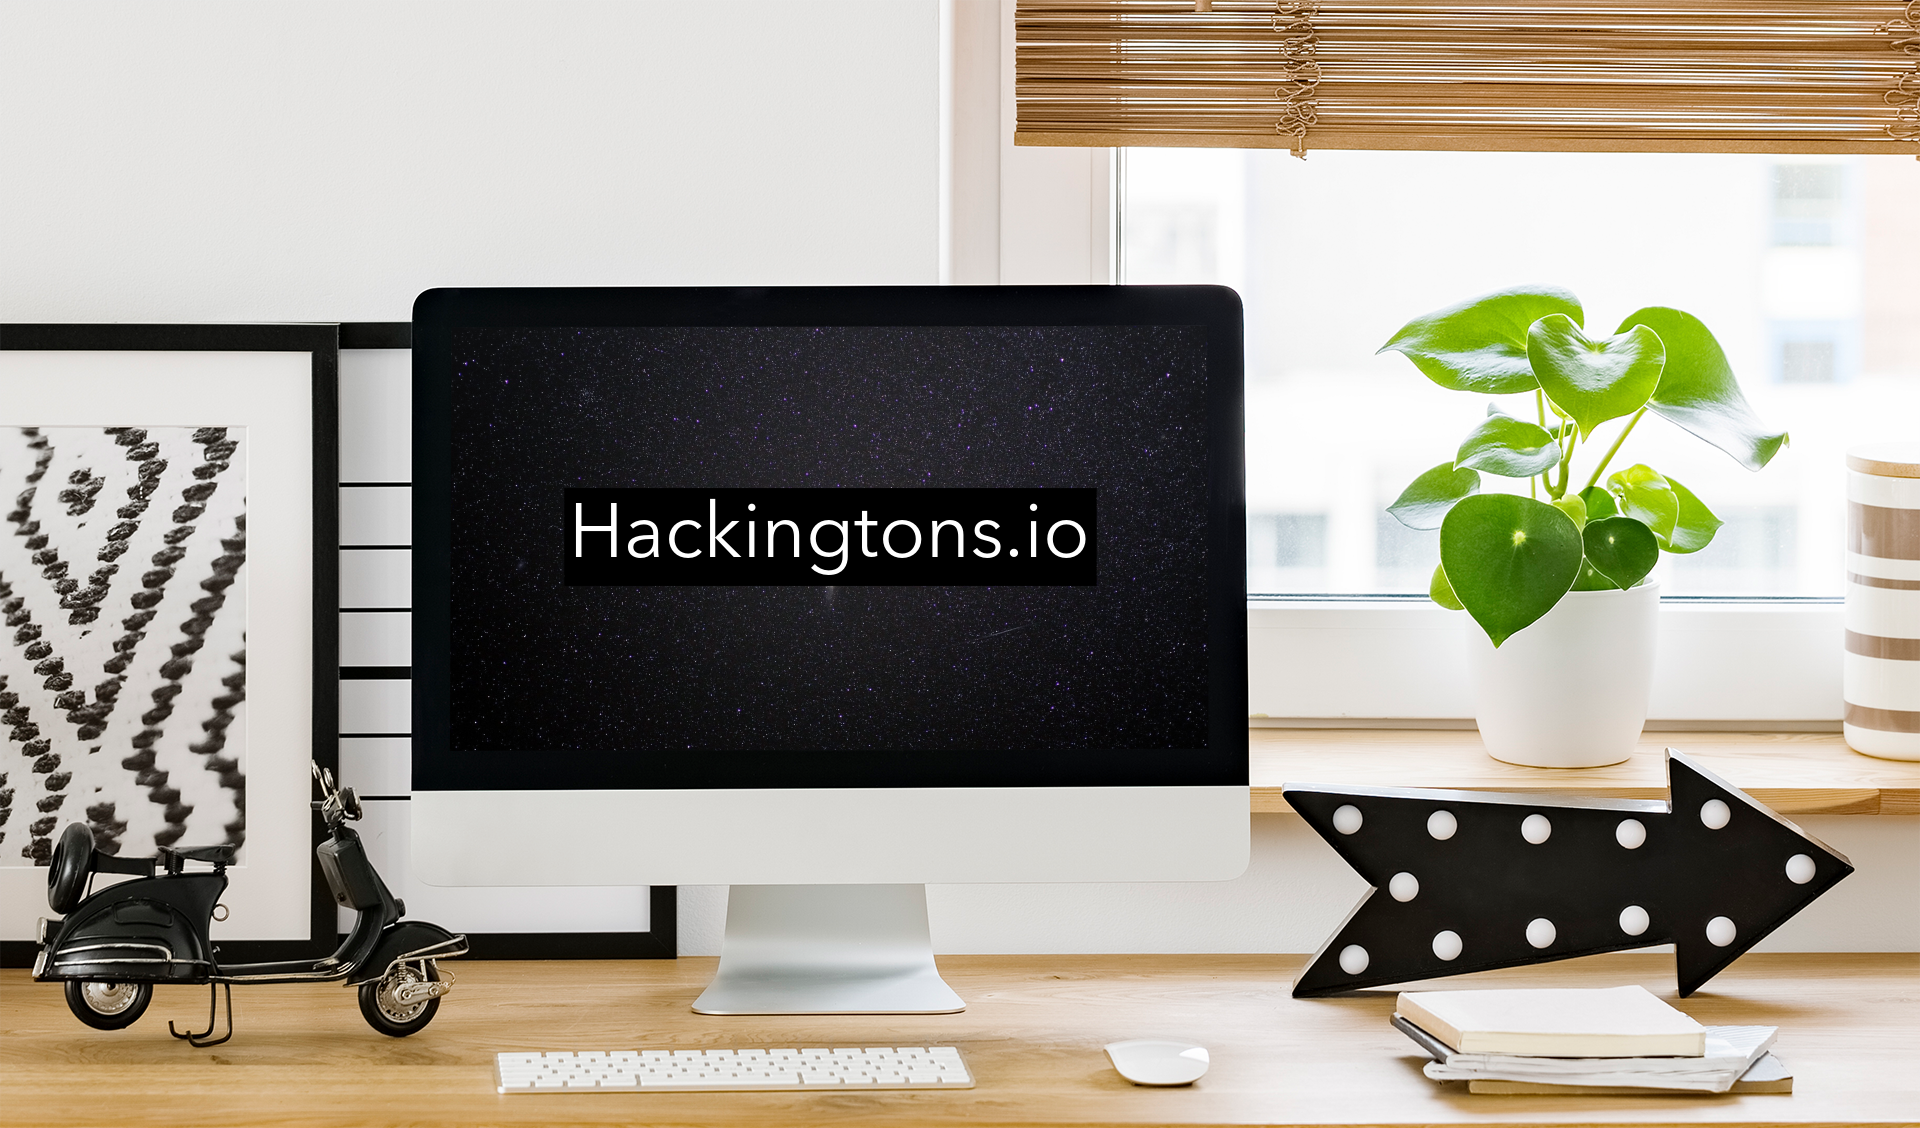 Hackingtons location in Pleasant Hill California.  6 desks with laptops infront of a large television.